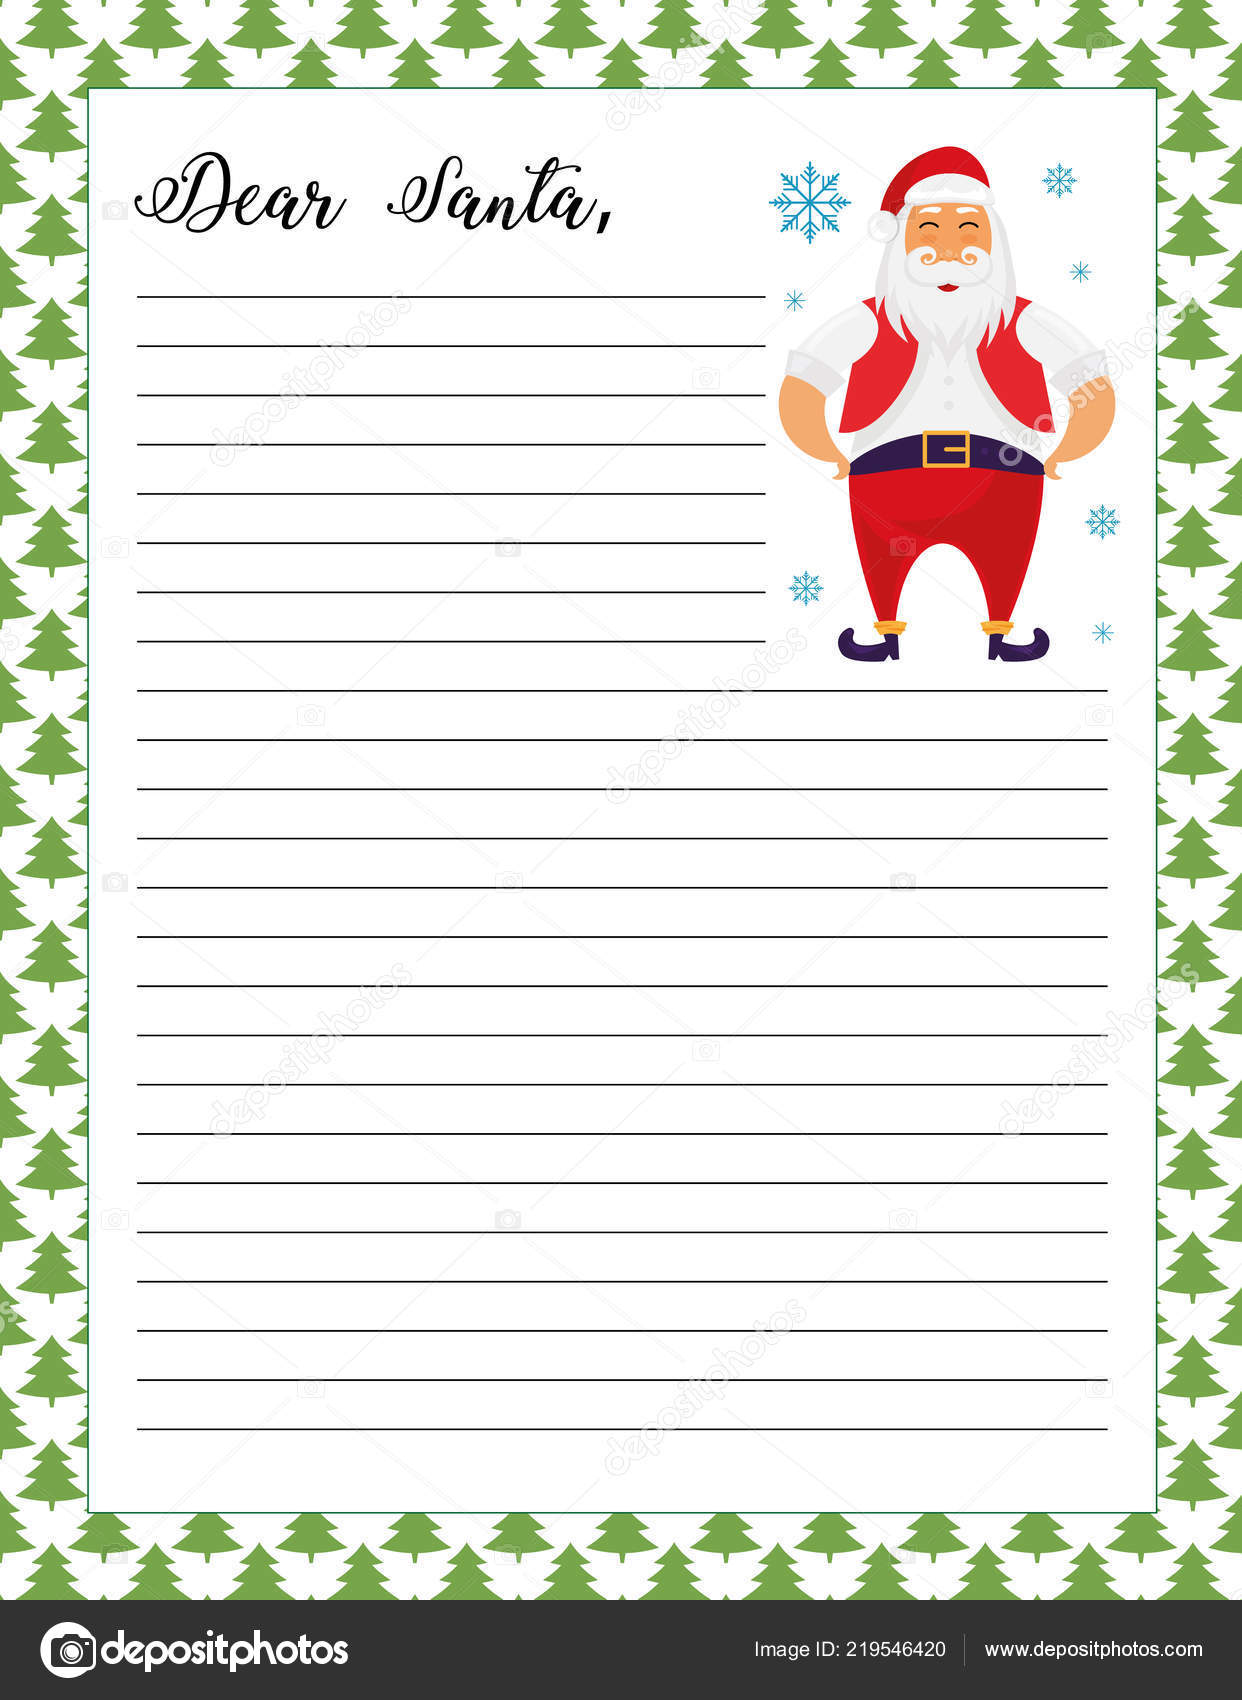 picture relating to Letters to Santa Templates Free Printable identify Letter Santa Template Printable Web page Xmas Tree Items